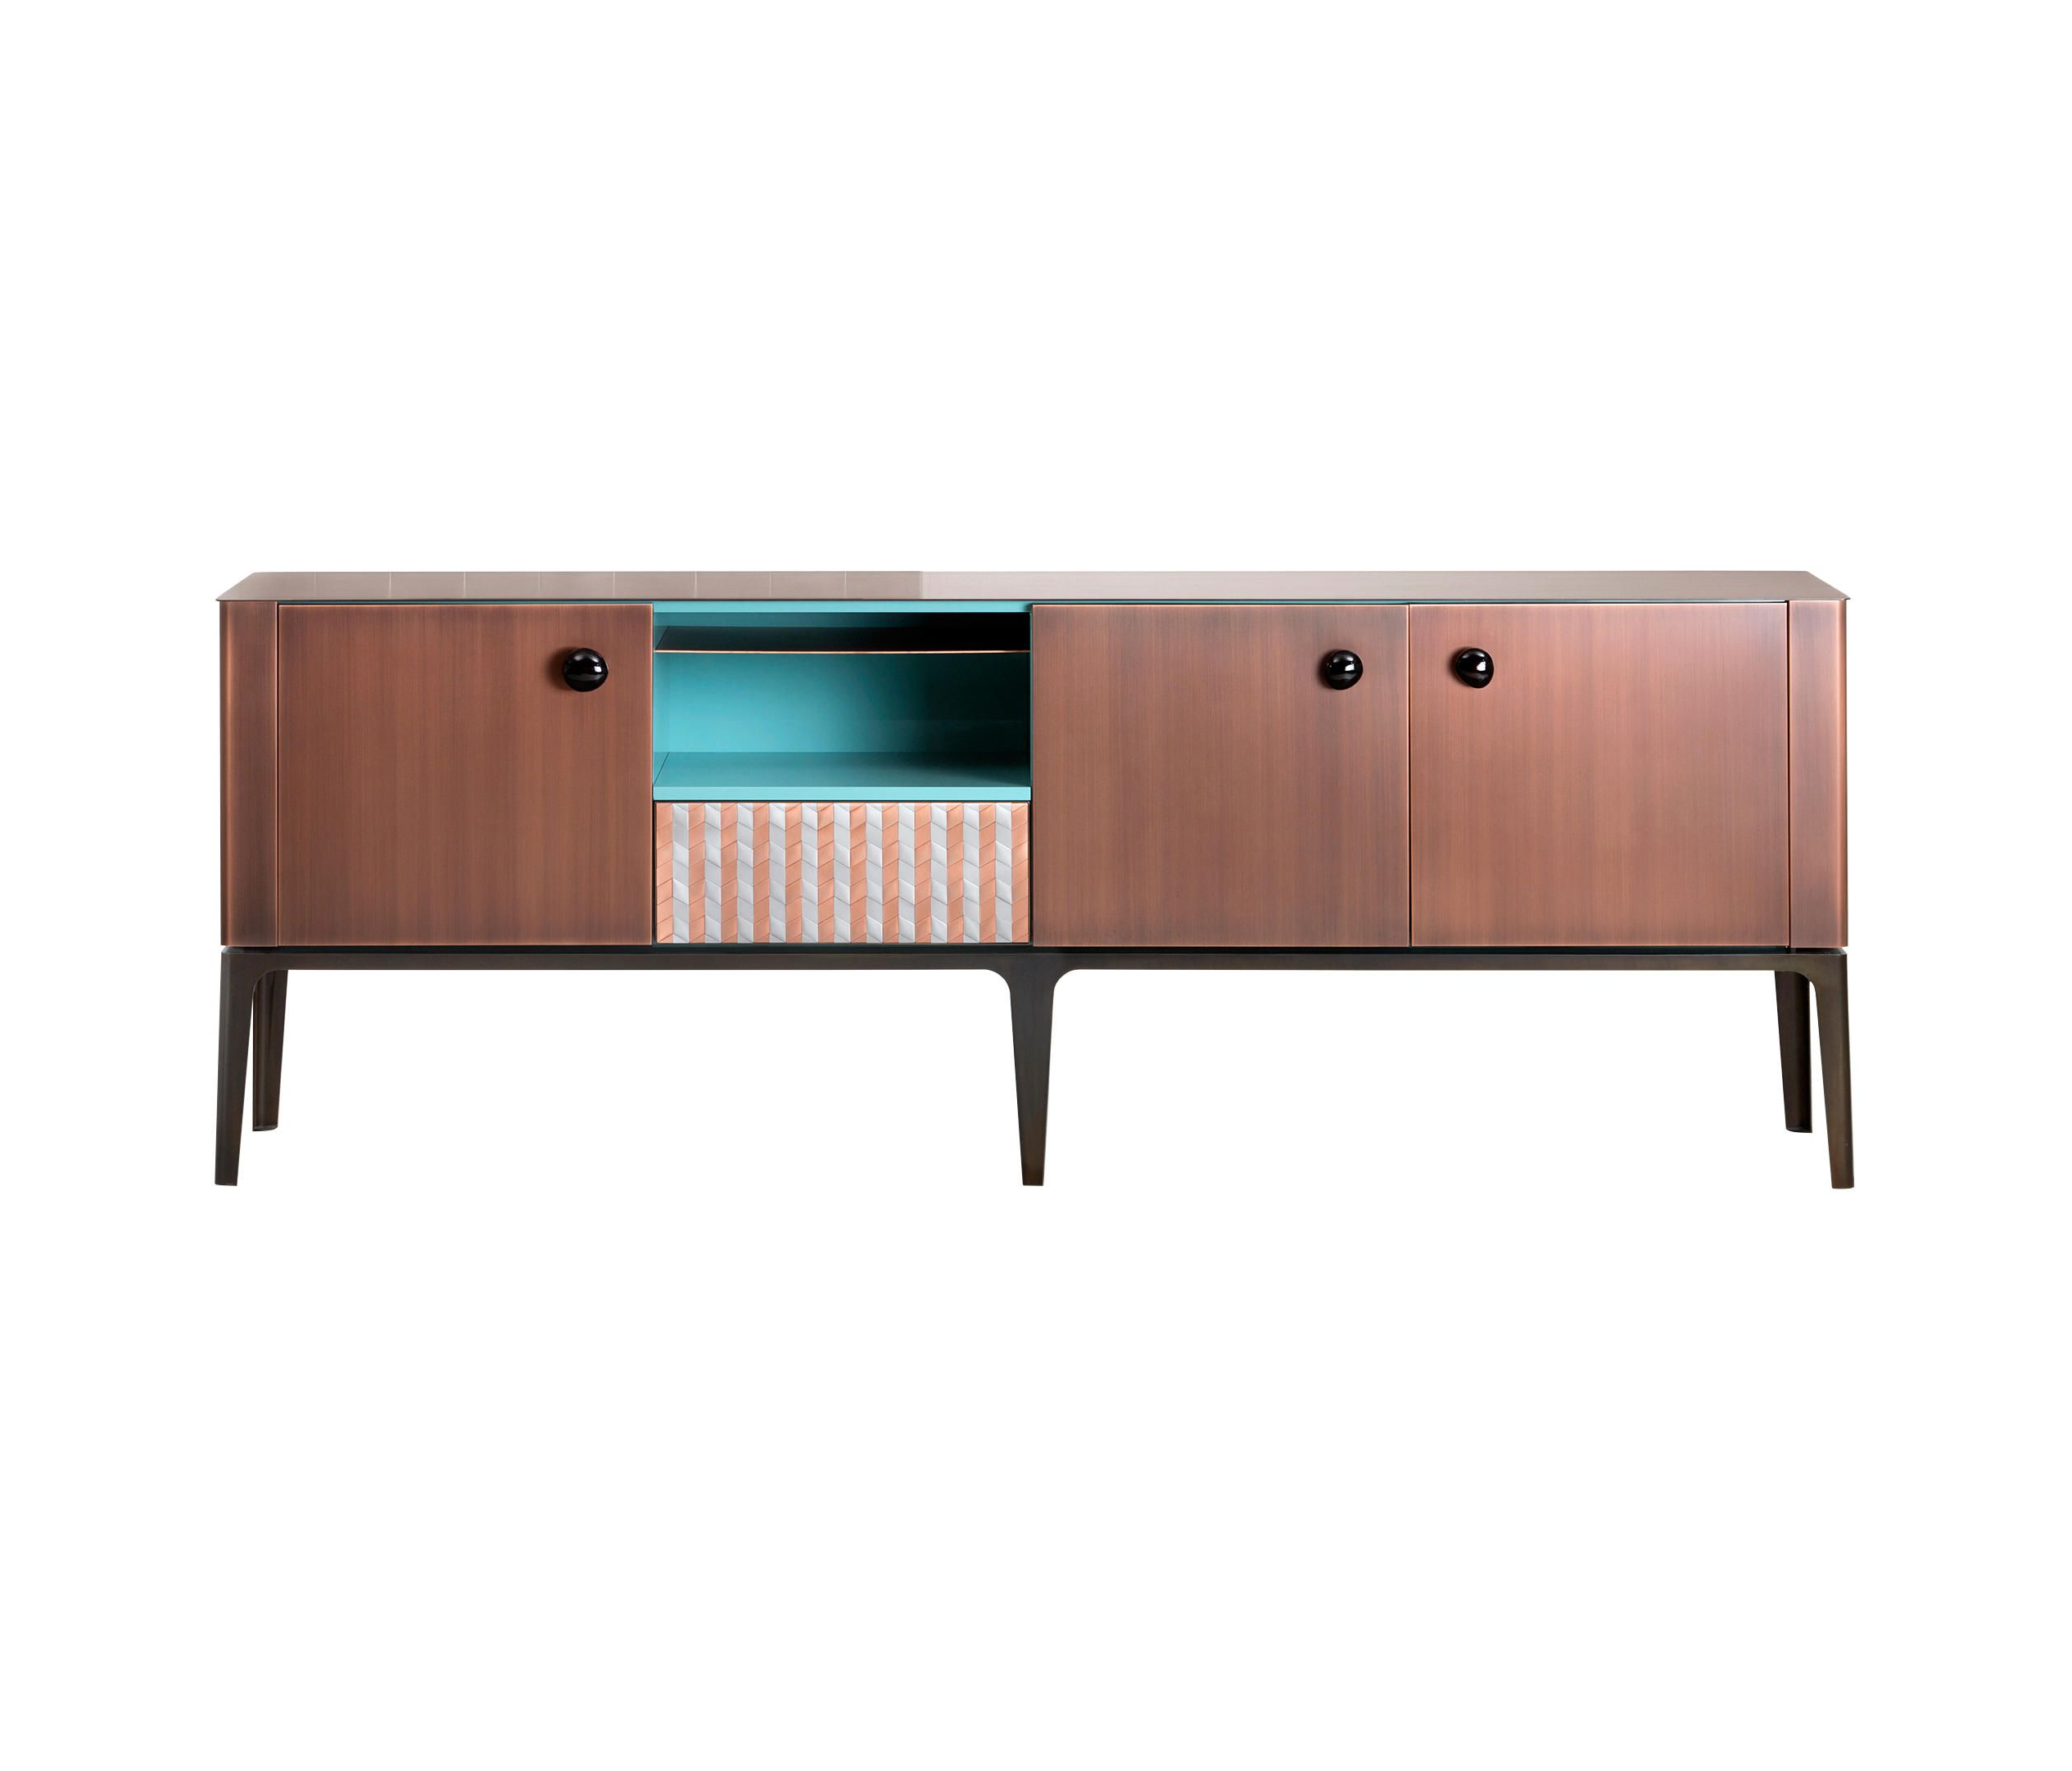 Gioiellode Castelli | Sideboards | Mobili / Furniture Throughout Castelli Sideboards (View 6 of 20)